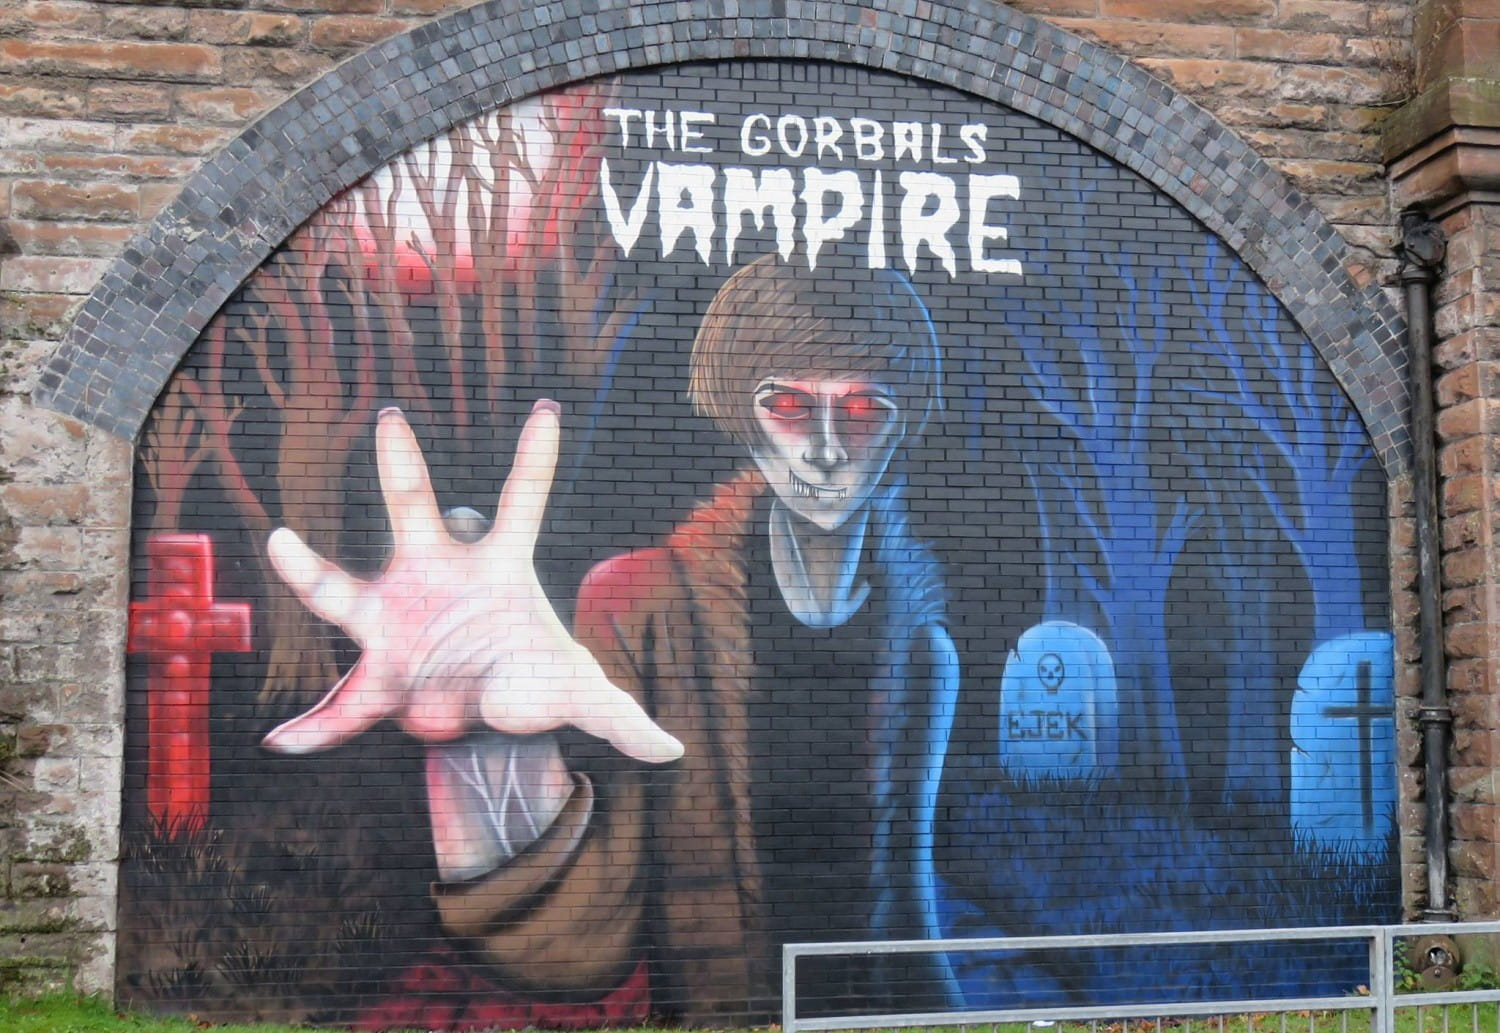 The Gorbals Vampire mural, in Luke's Place, by the artist EJEK